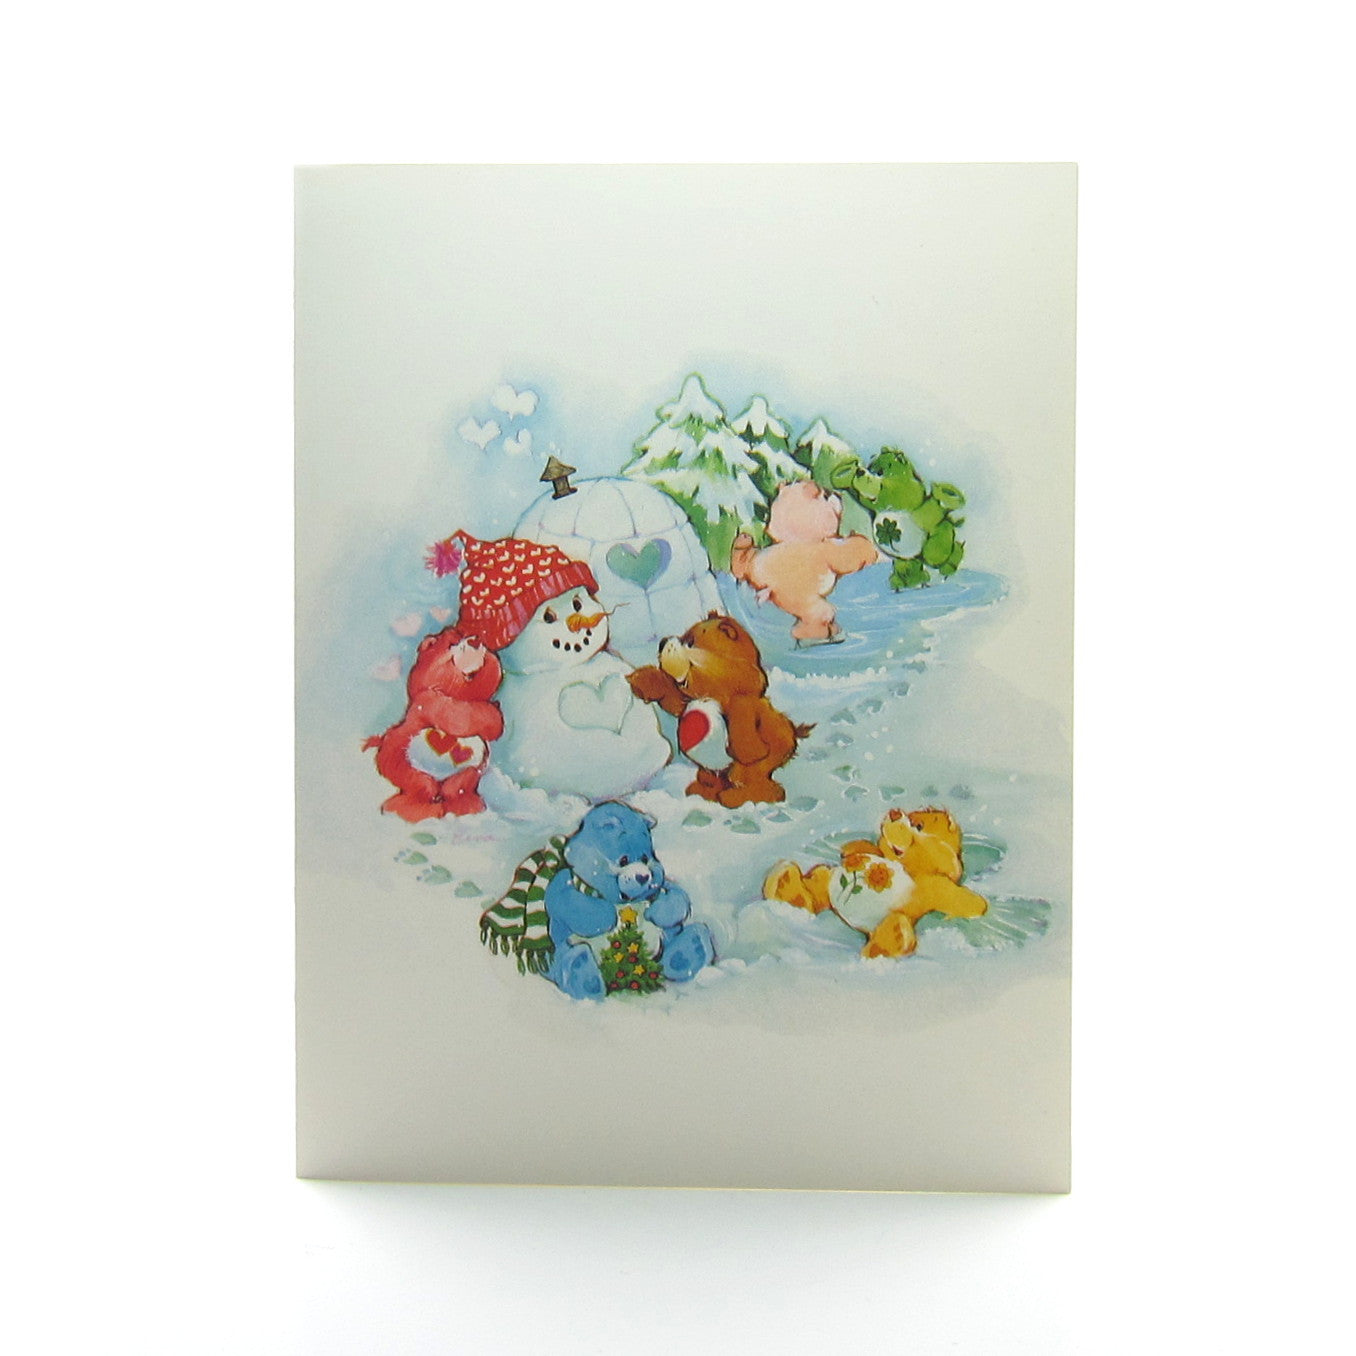 Care Bears Happy Holidays greeting card with snowman and igloo